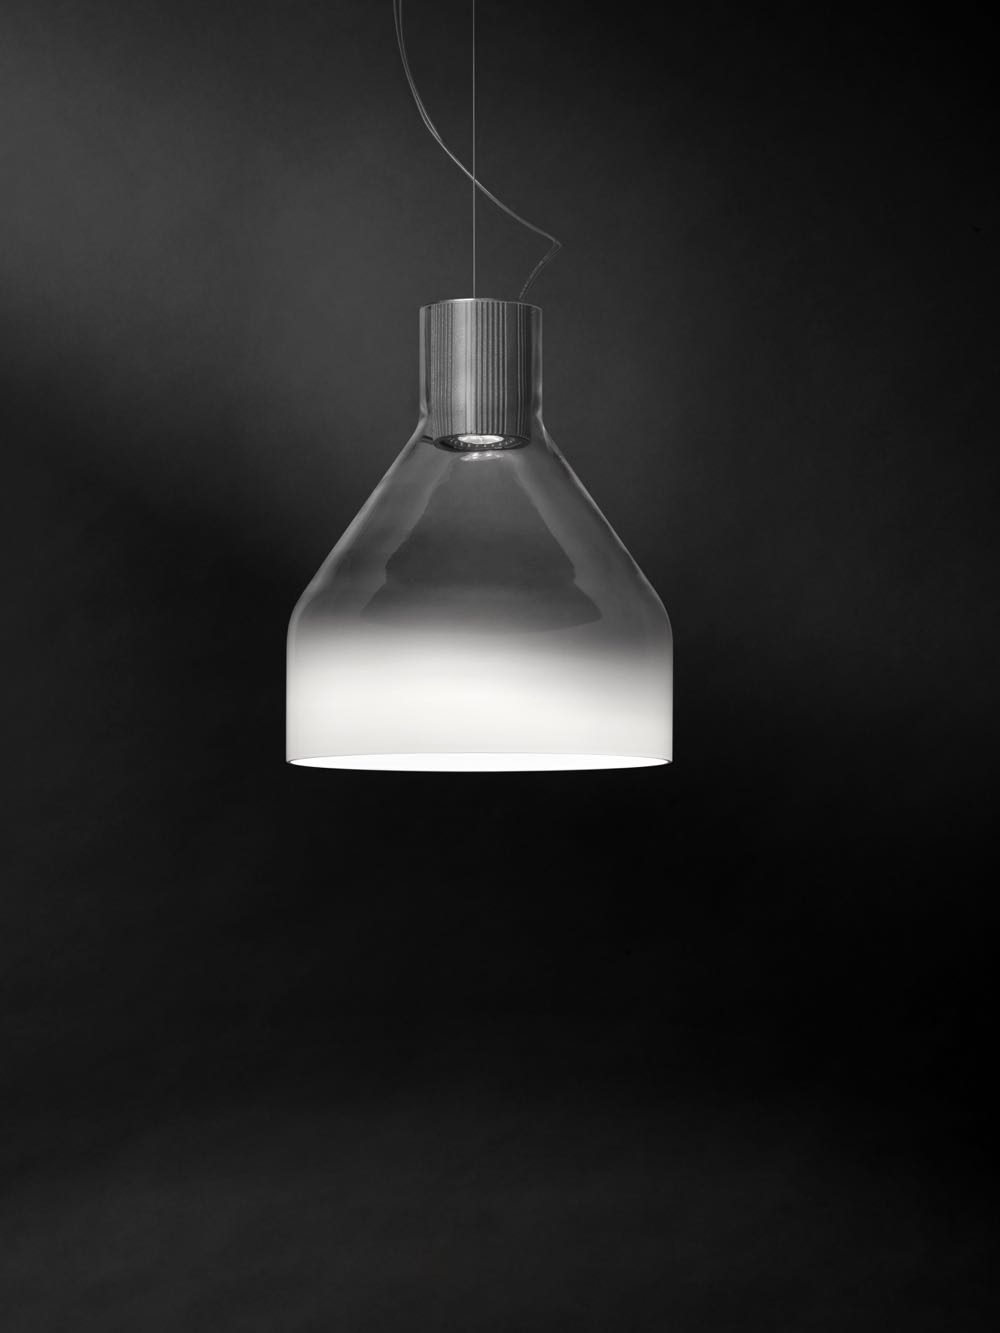 'Caiigo' by Marco Zito for Foscarini changes from clear to white glass and has a beautiful misty quality.